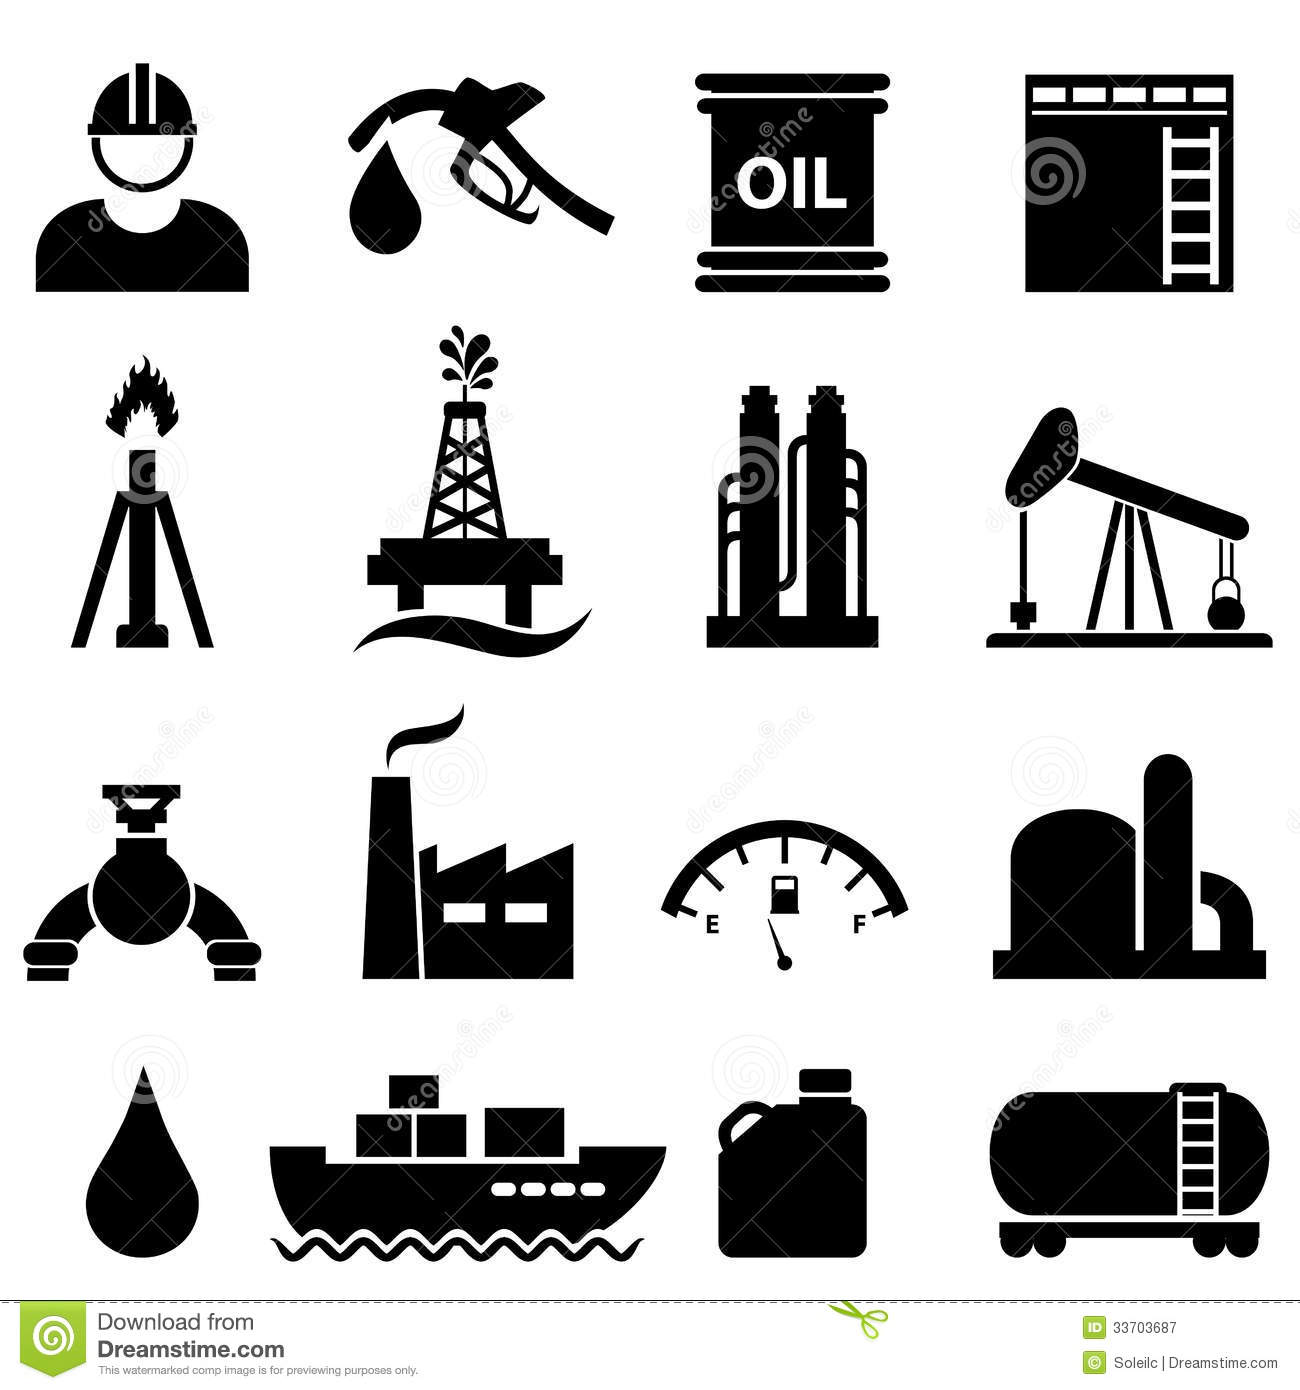 mence Operation Dirty Green further Royalty Free Stock Images Factory Icons Over White Background Vector Illustration Image32607839 in addition E1M7   puter Station  Doom furthermore Mining Association Head Warns Governments To Keep Hands Off furthermore Oakley Pictures Logo. on refinery map